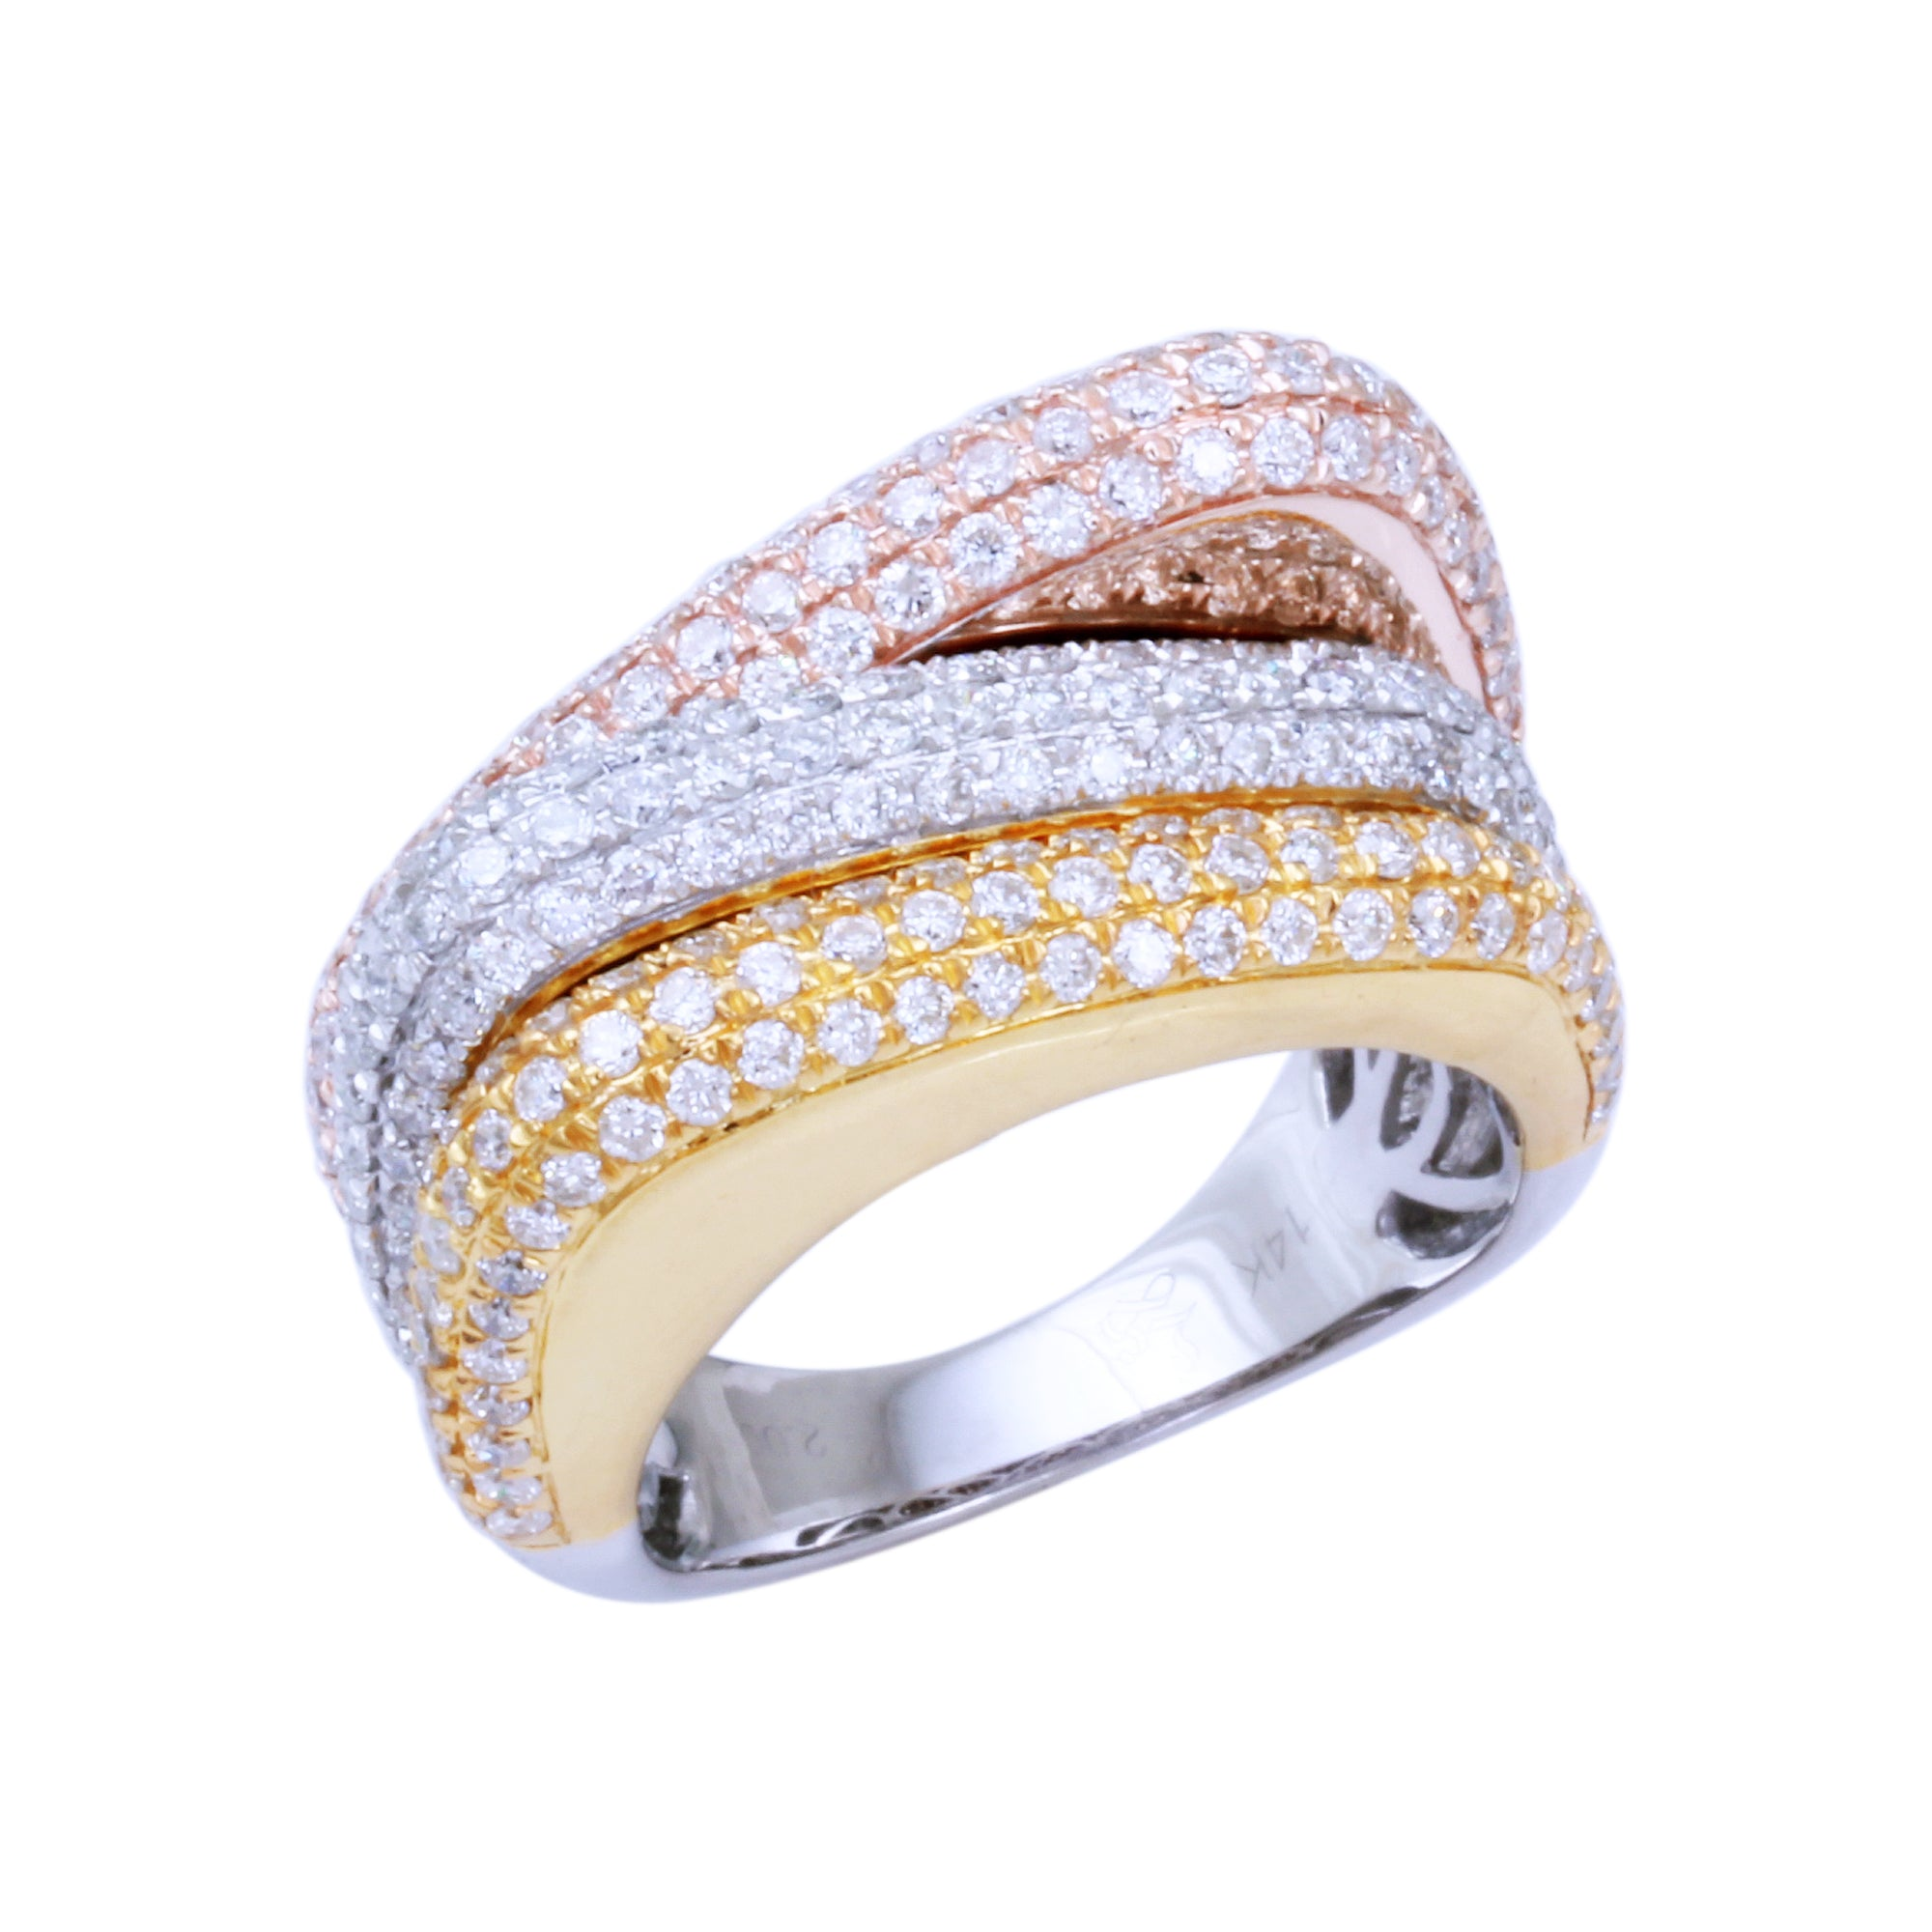 alsayegh ring of diamond rings collection wedding awesome three best band bands